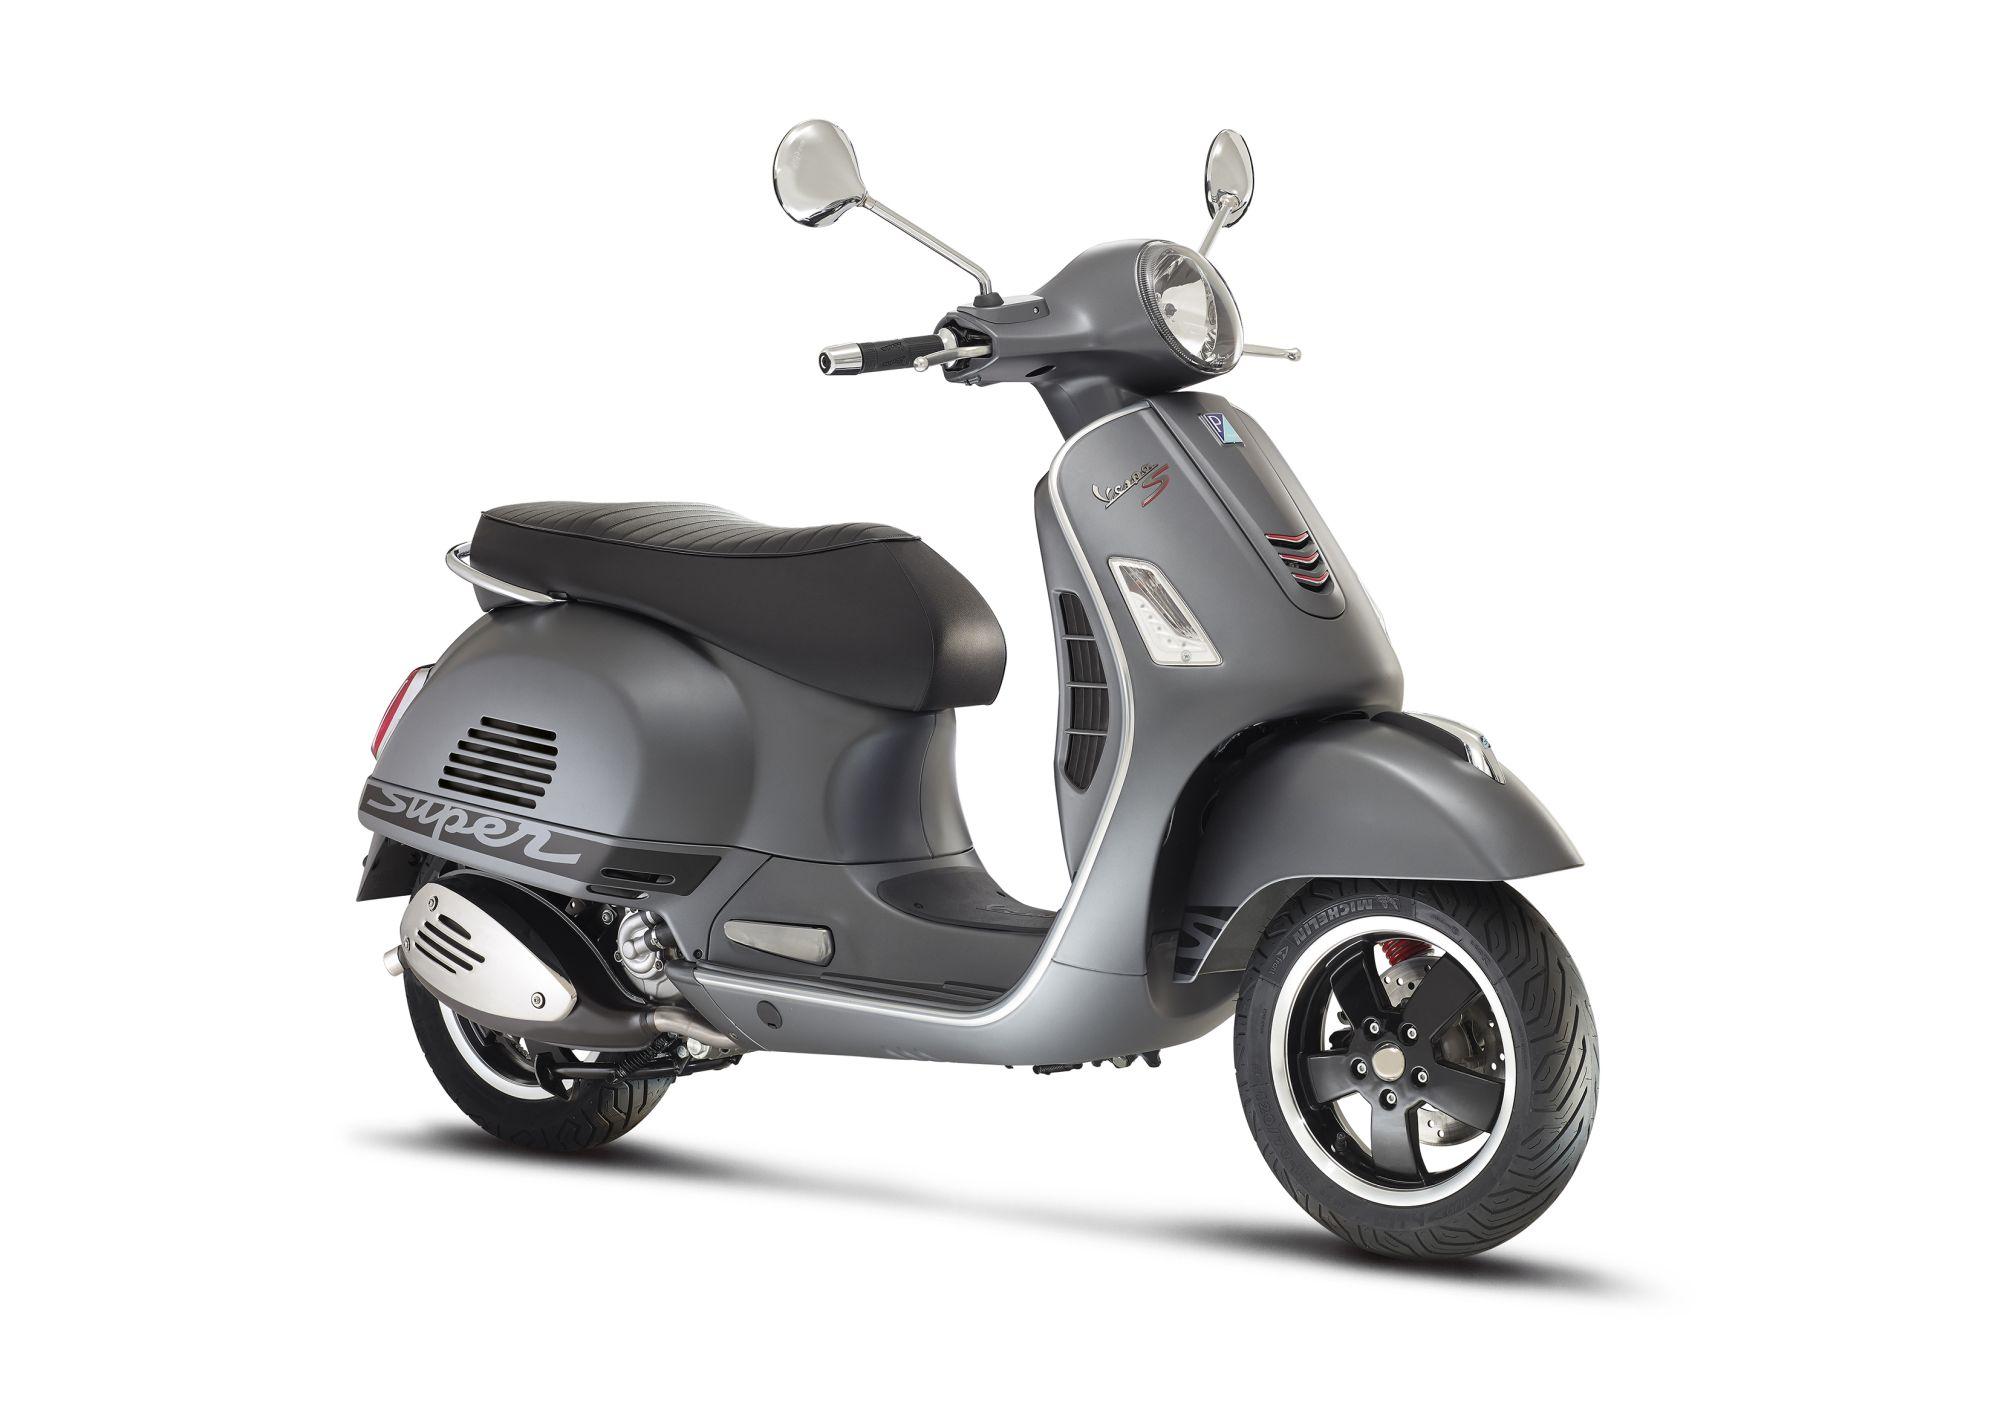 vespa gts 125 i e super sport bilder und technische daten. Black Bedroom Furniture Sets. Home Design Ideas